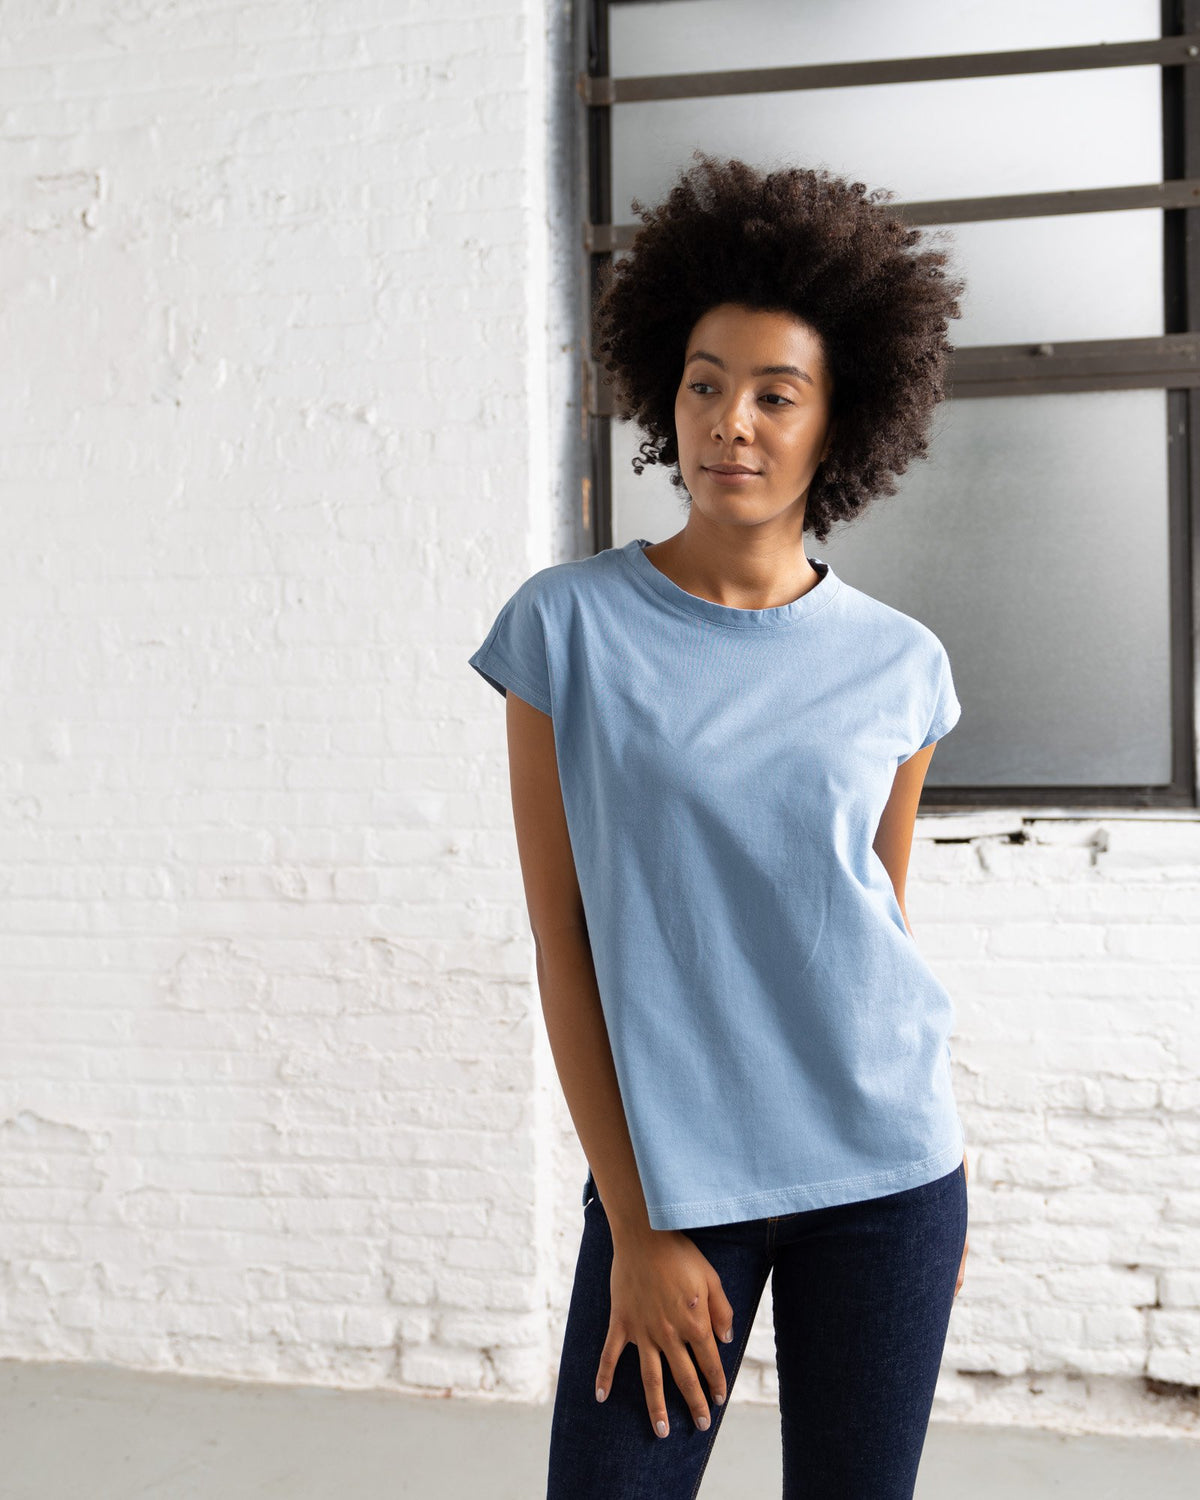 Dolman T Color:Light Blue Combed Cotton New T-shirts Women's T-shirts